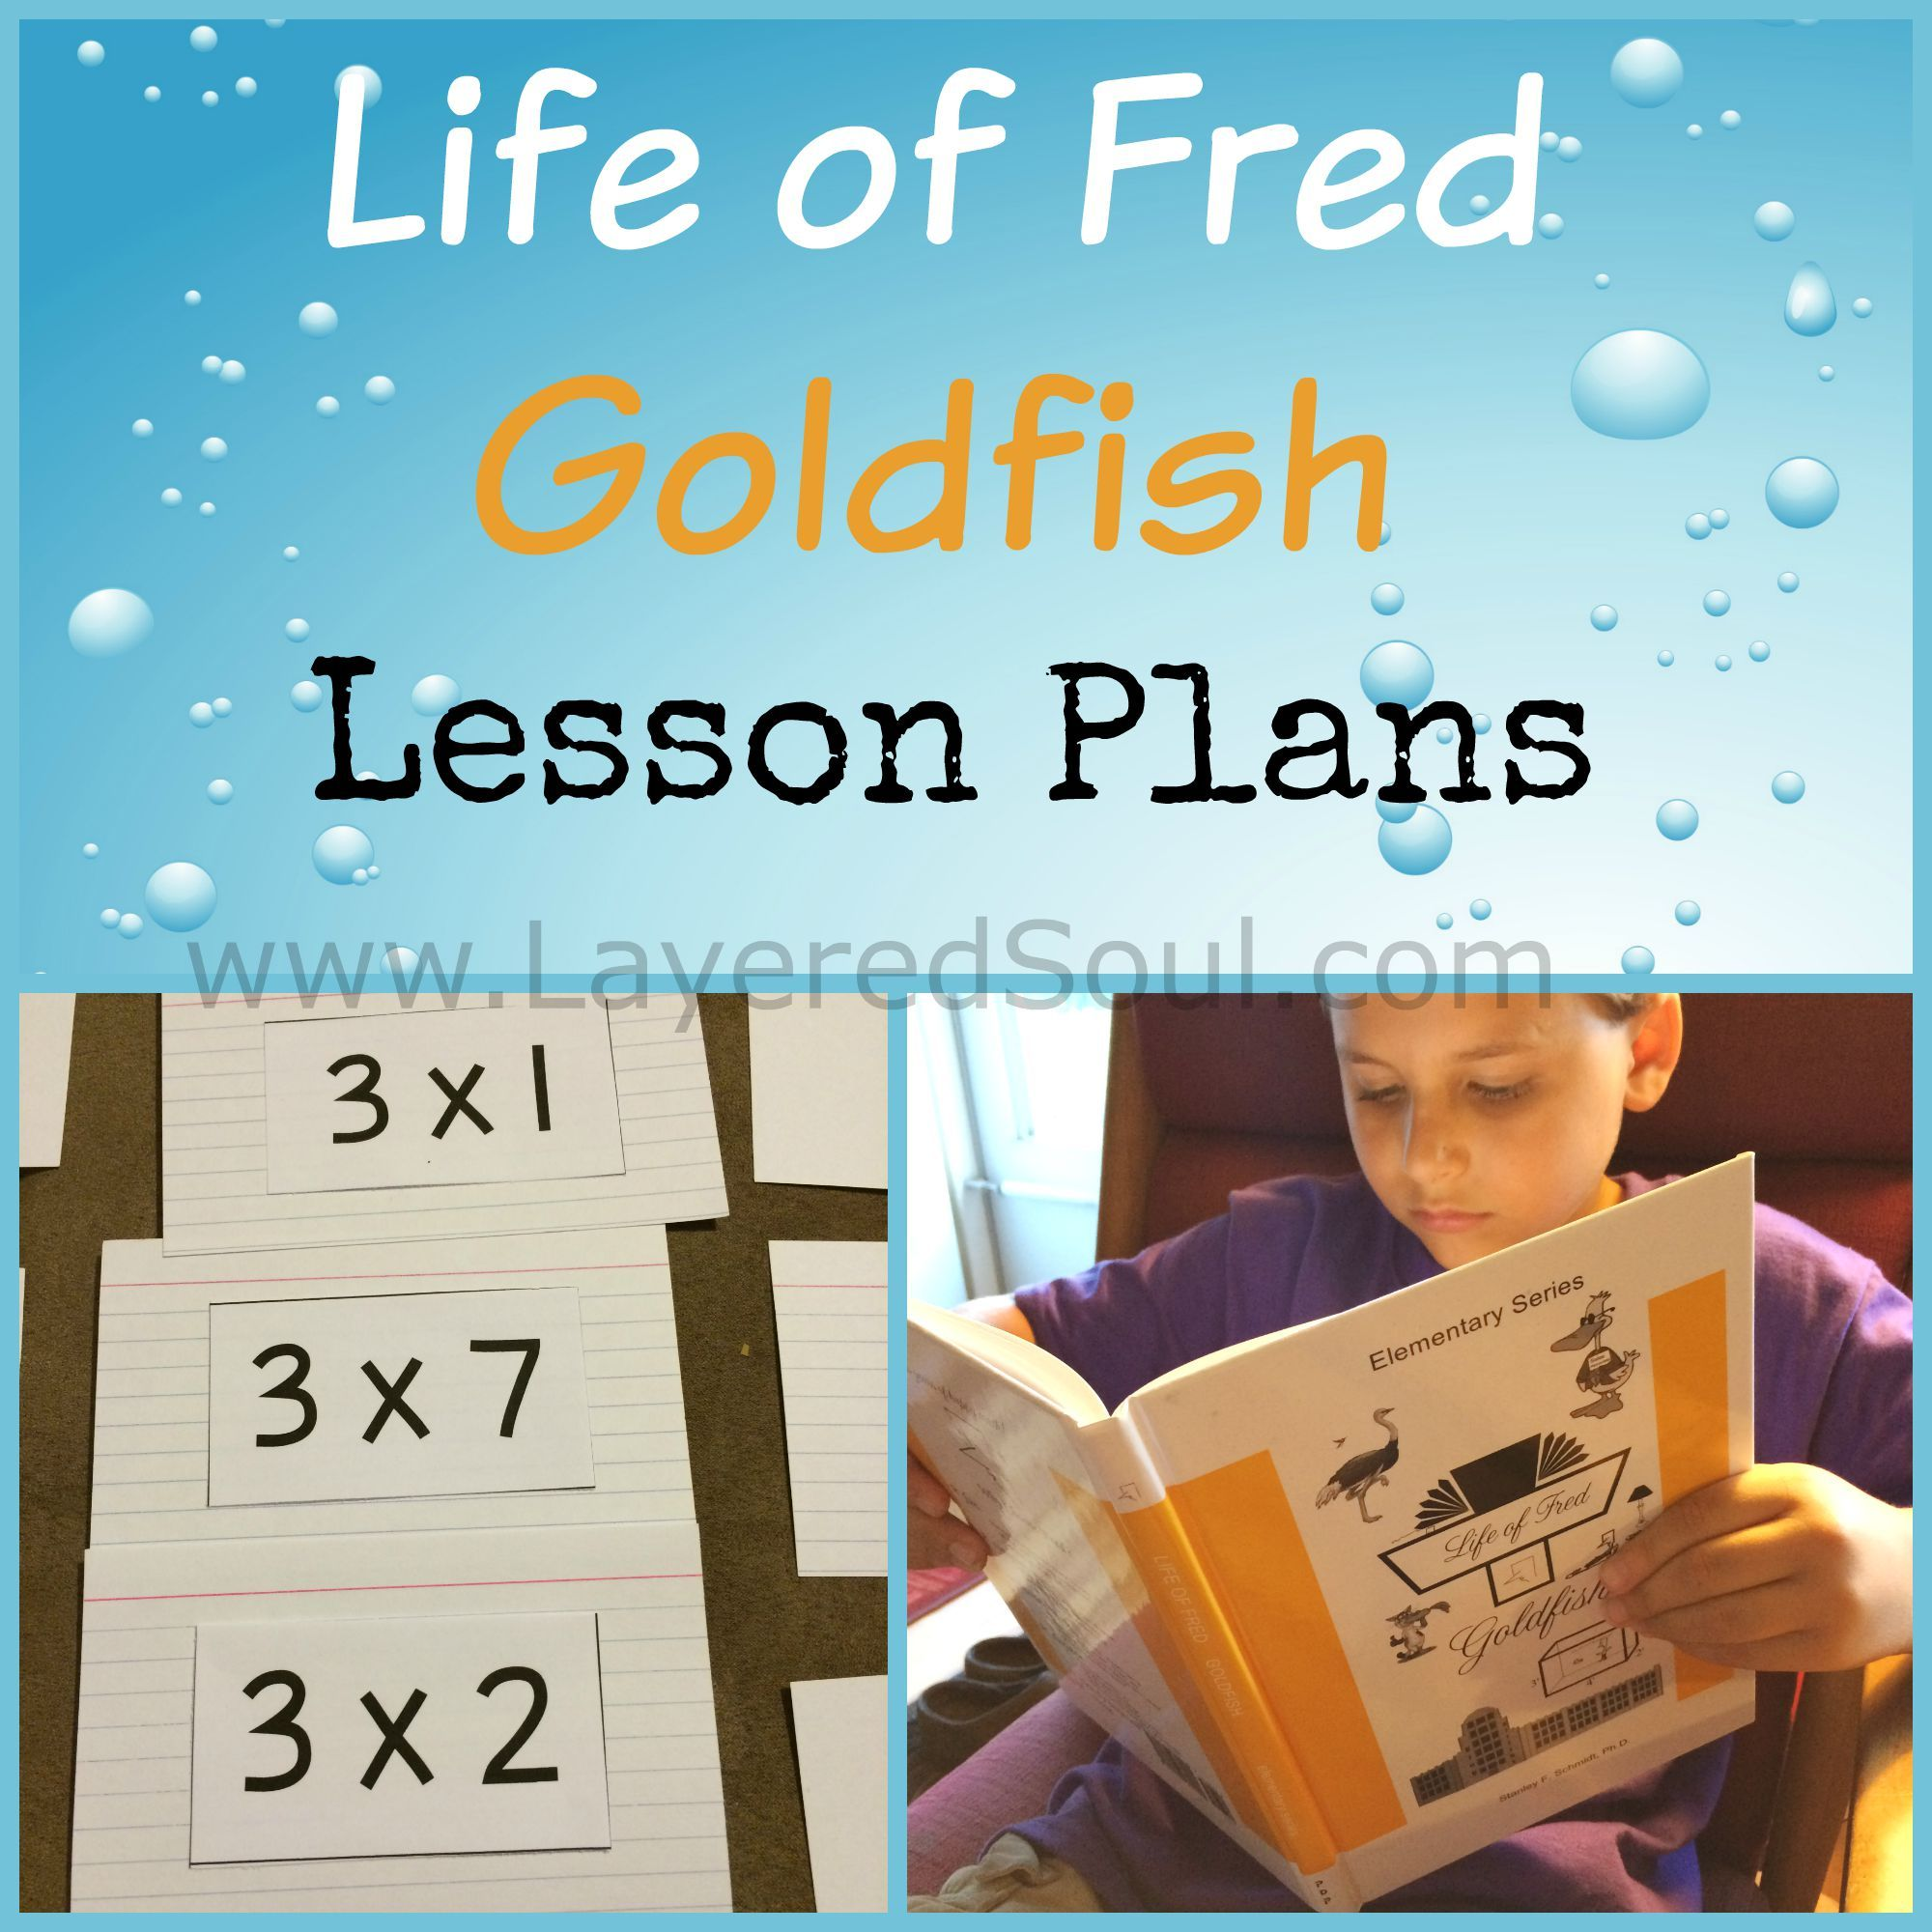 Life Of Fred Goldfish Lesson Plans